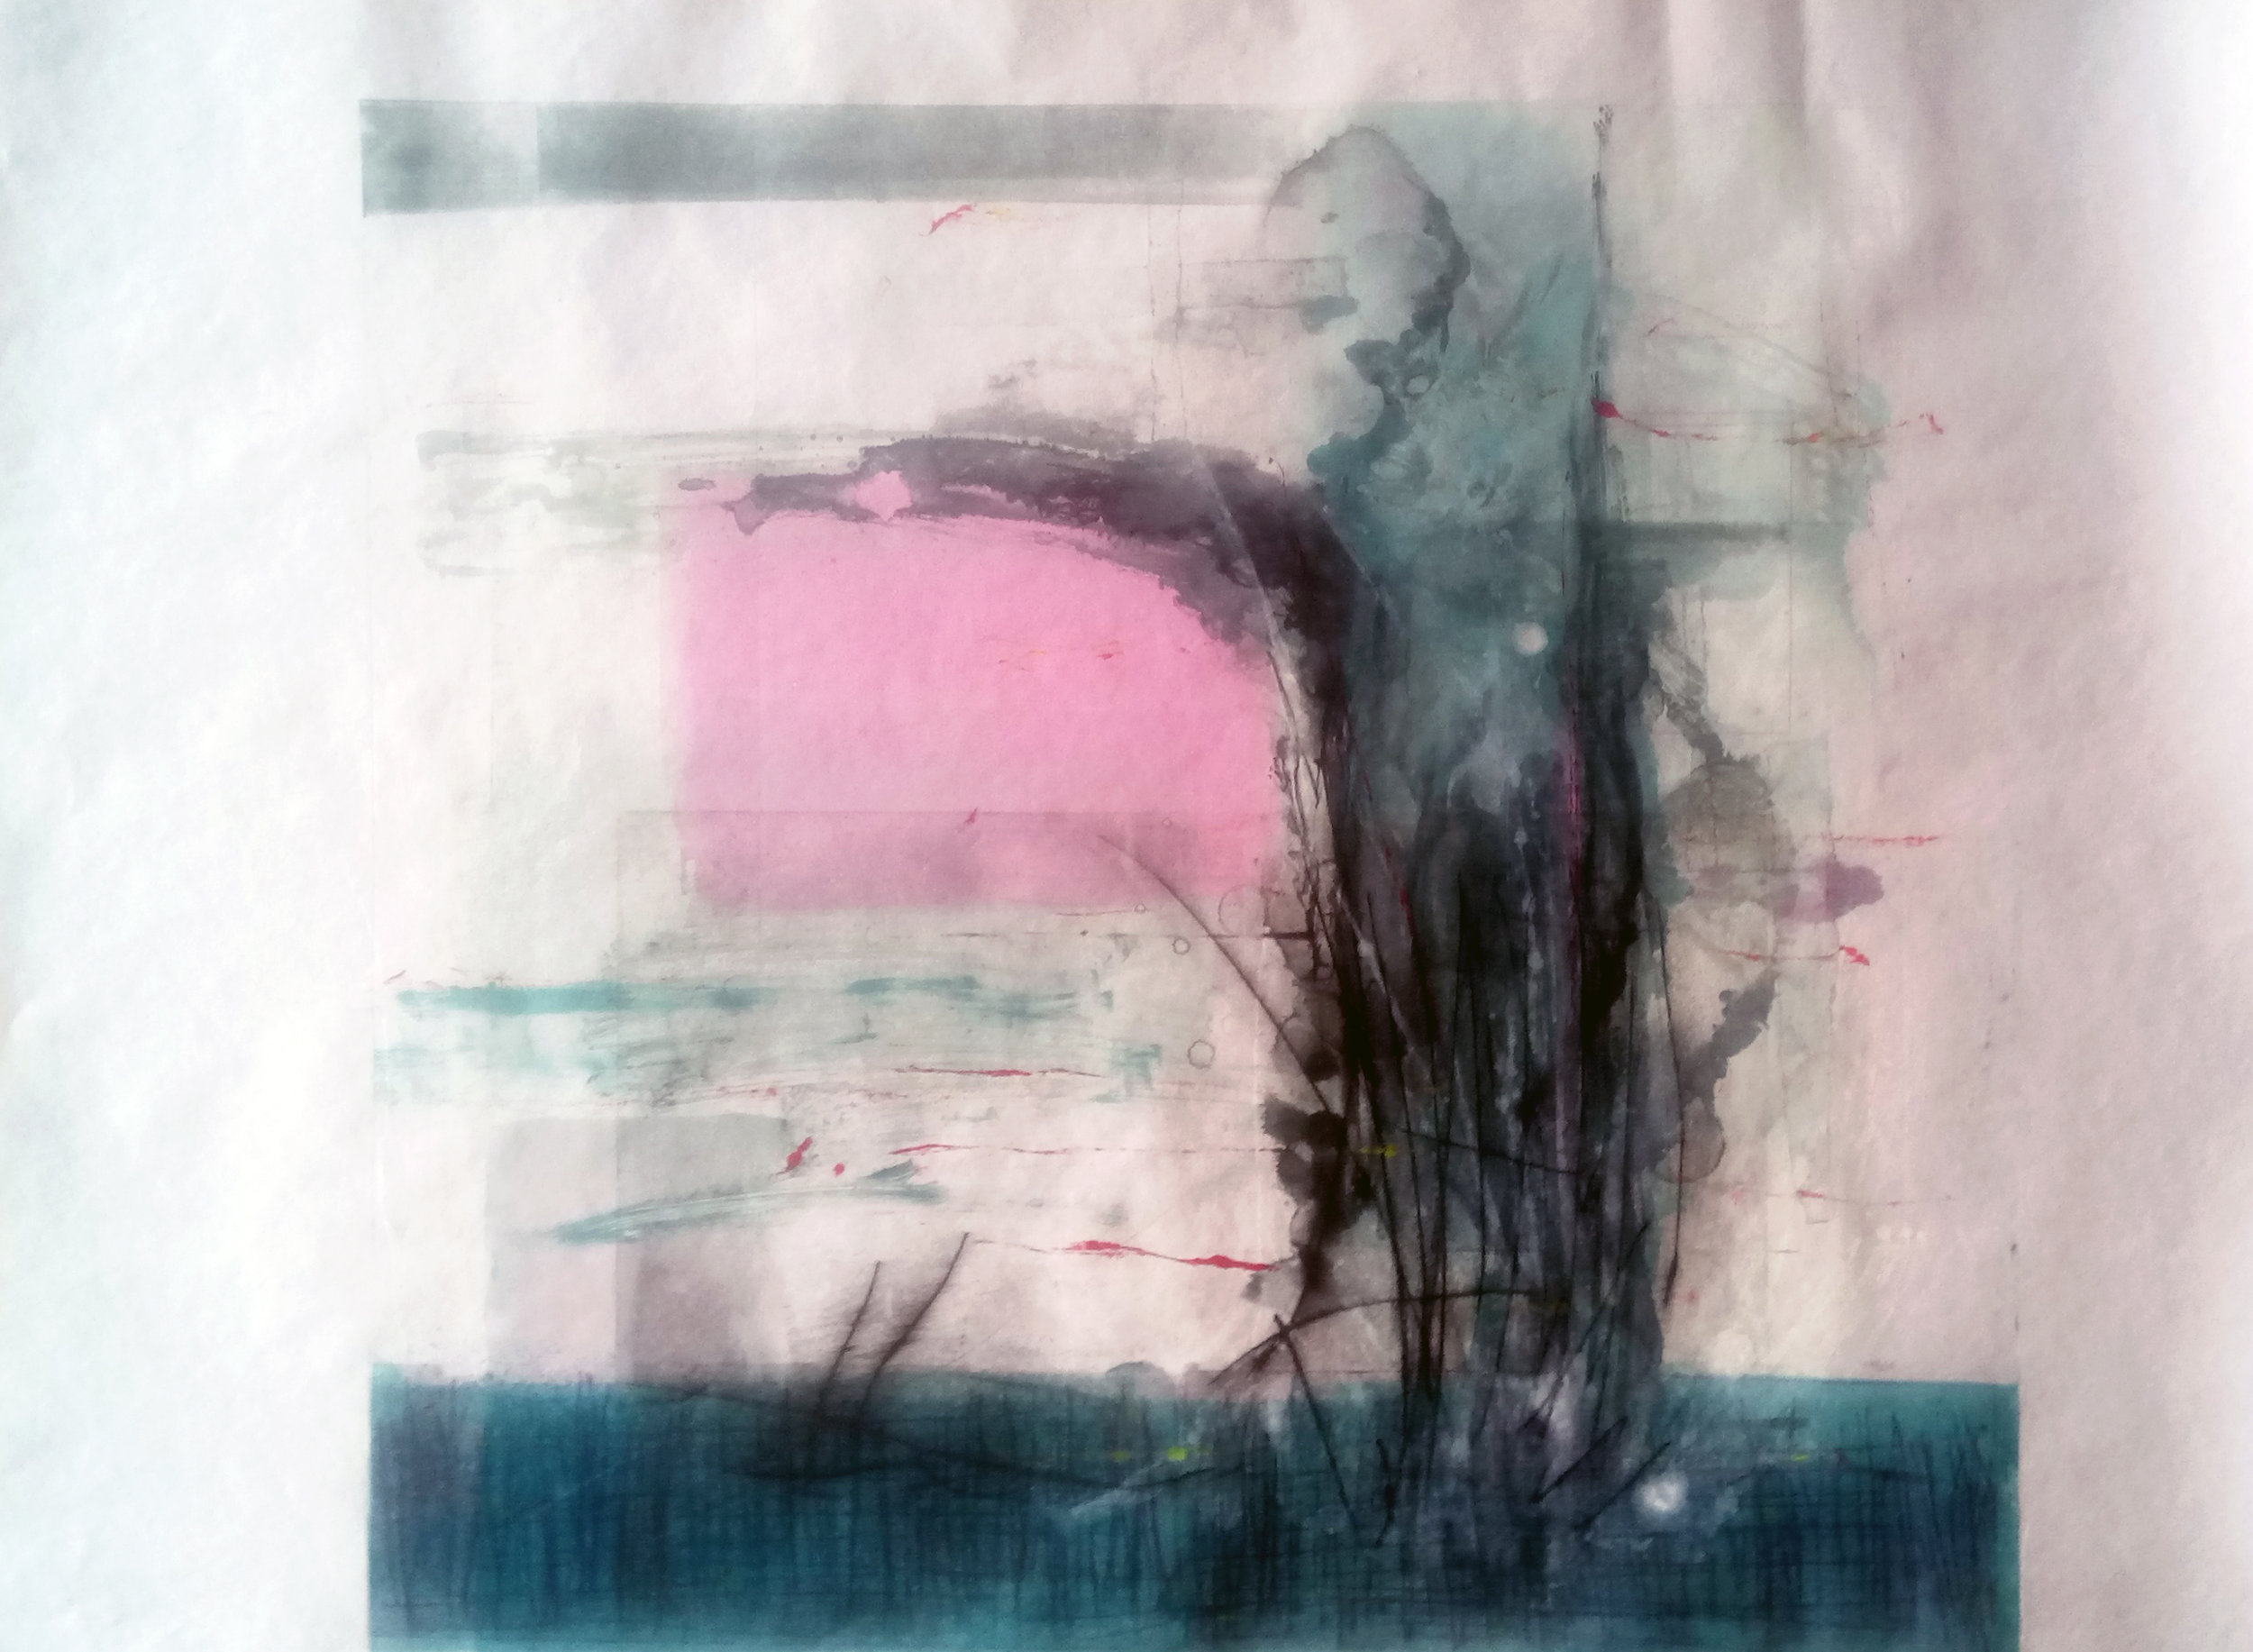 Monoprint with Drypoint on Japanese Tosa-Shi, August 2016